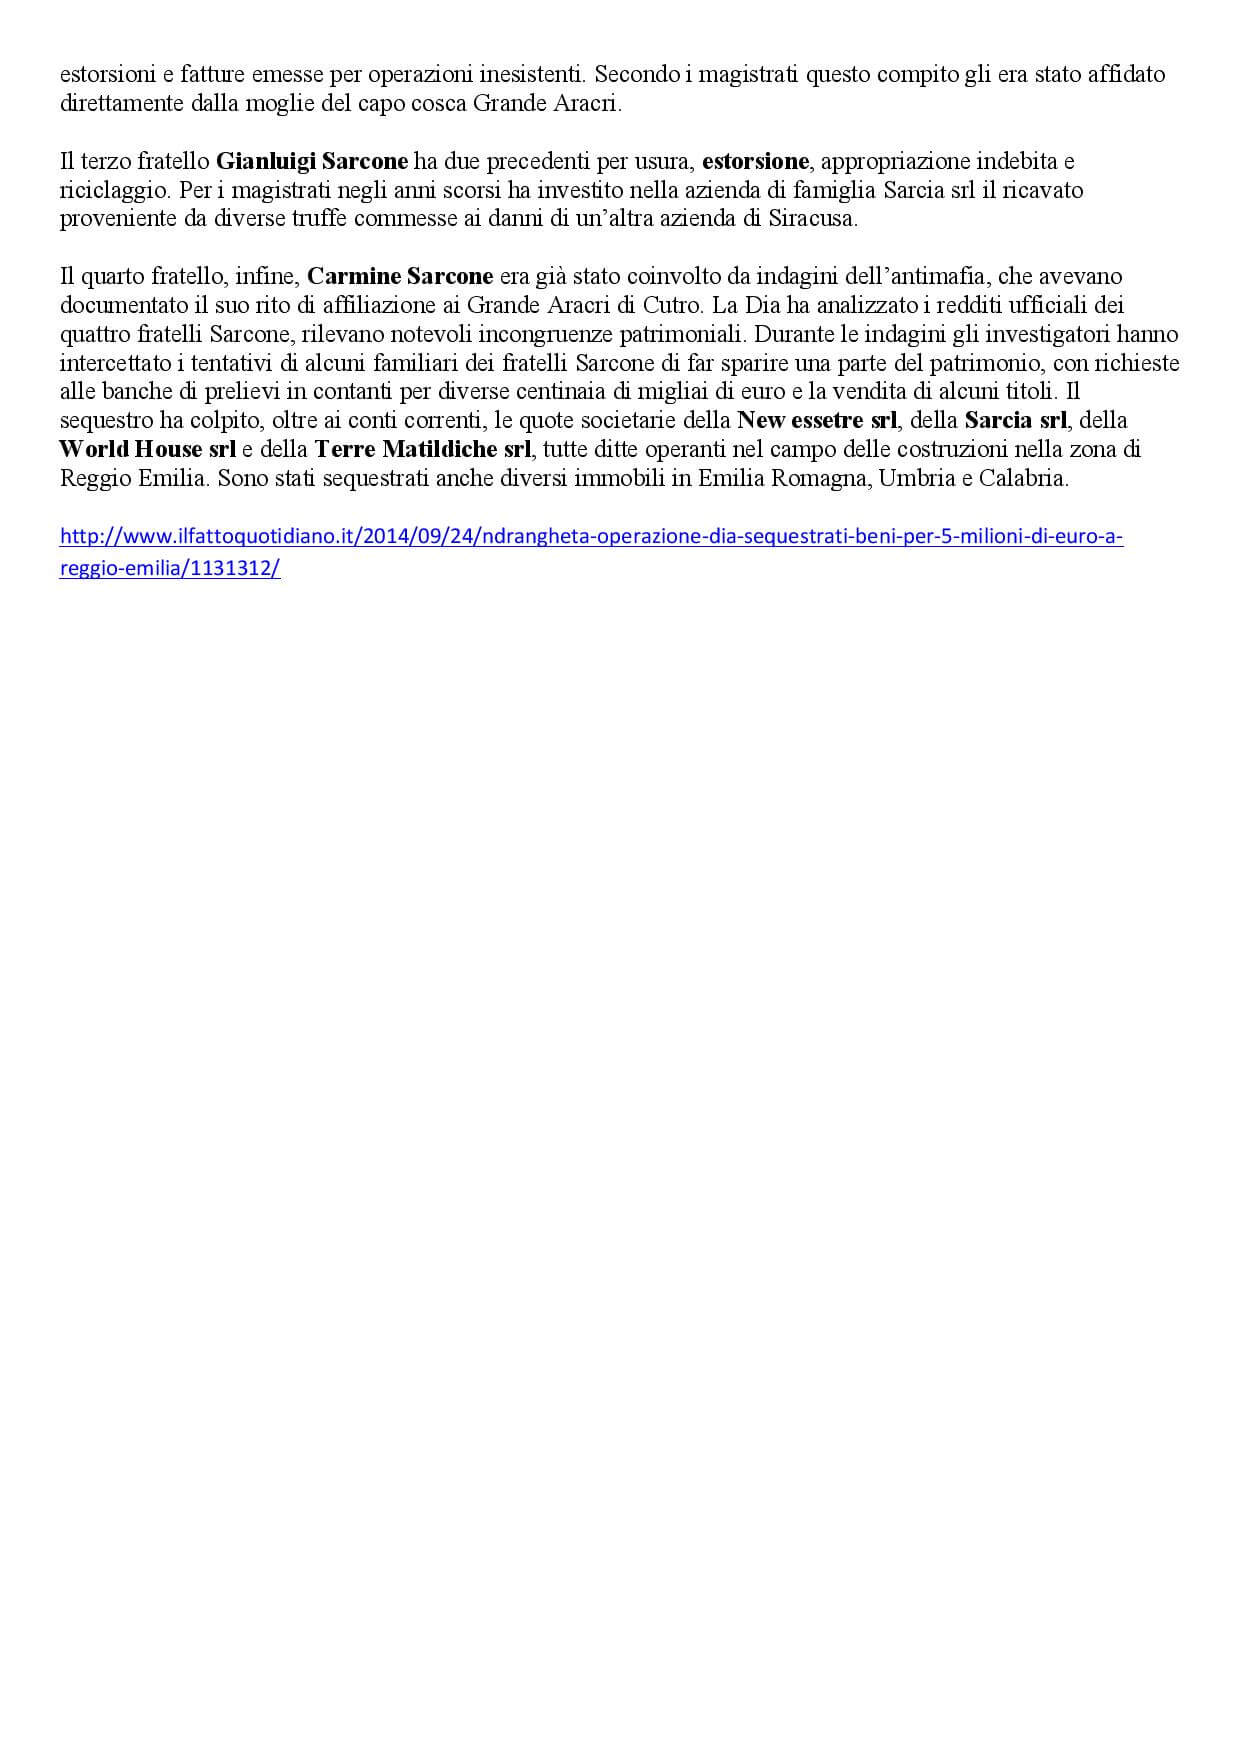 24_9_14_fq-page-002